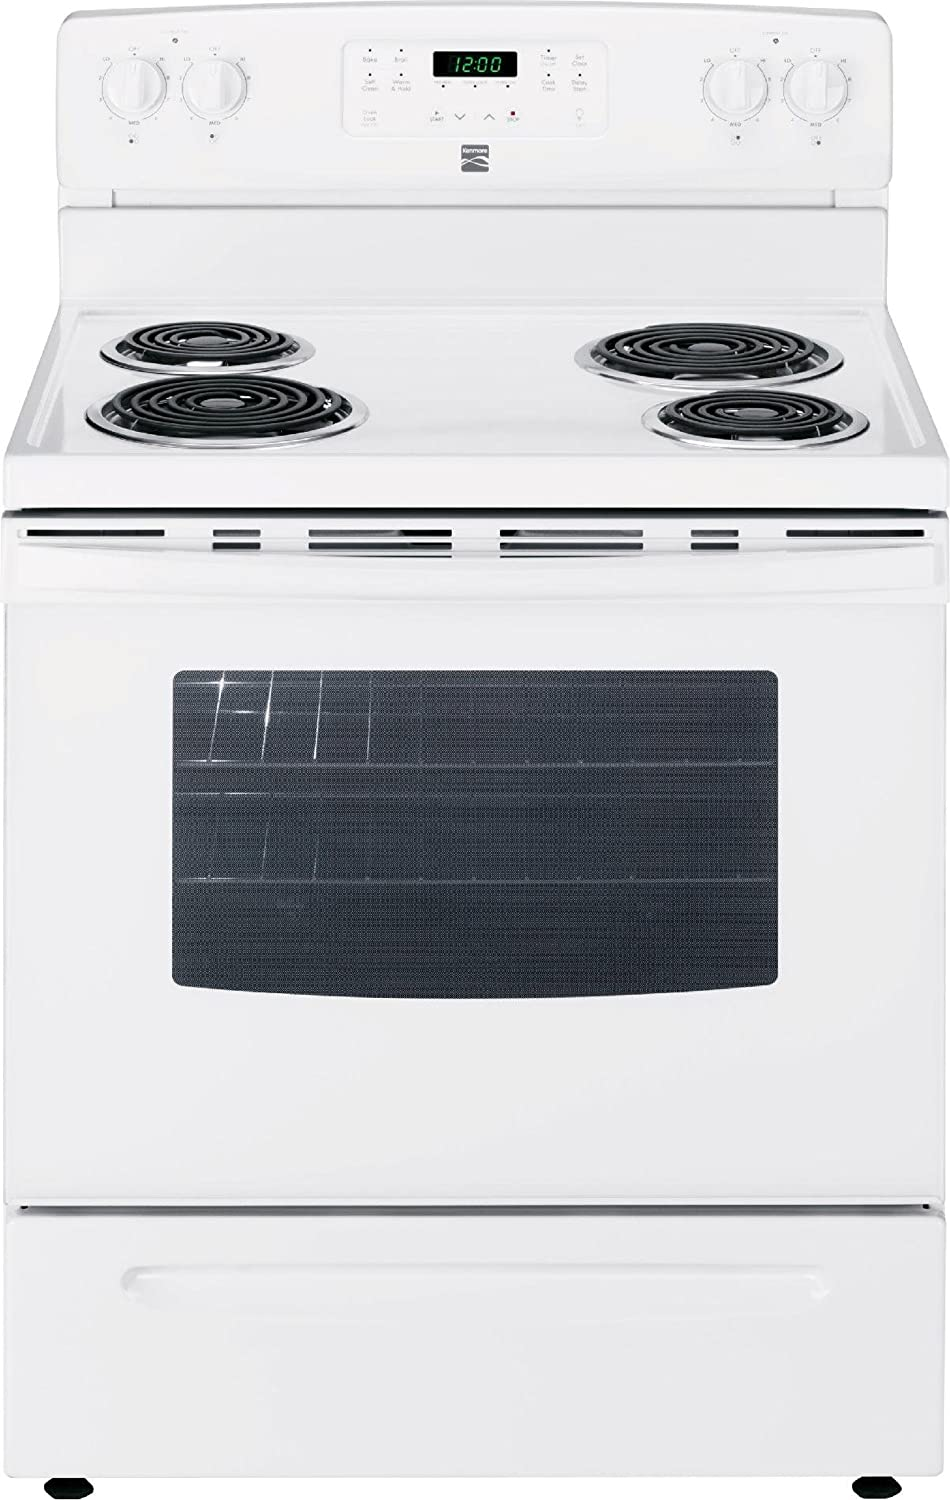 includes delivery and hookup -2295123 Front Control Electric Range ...